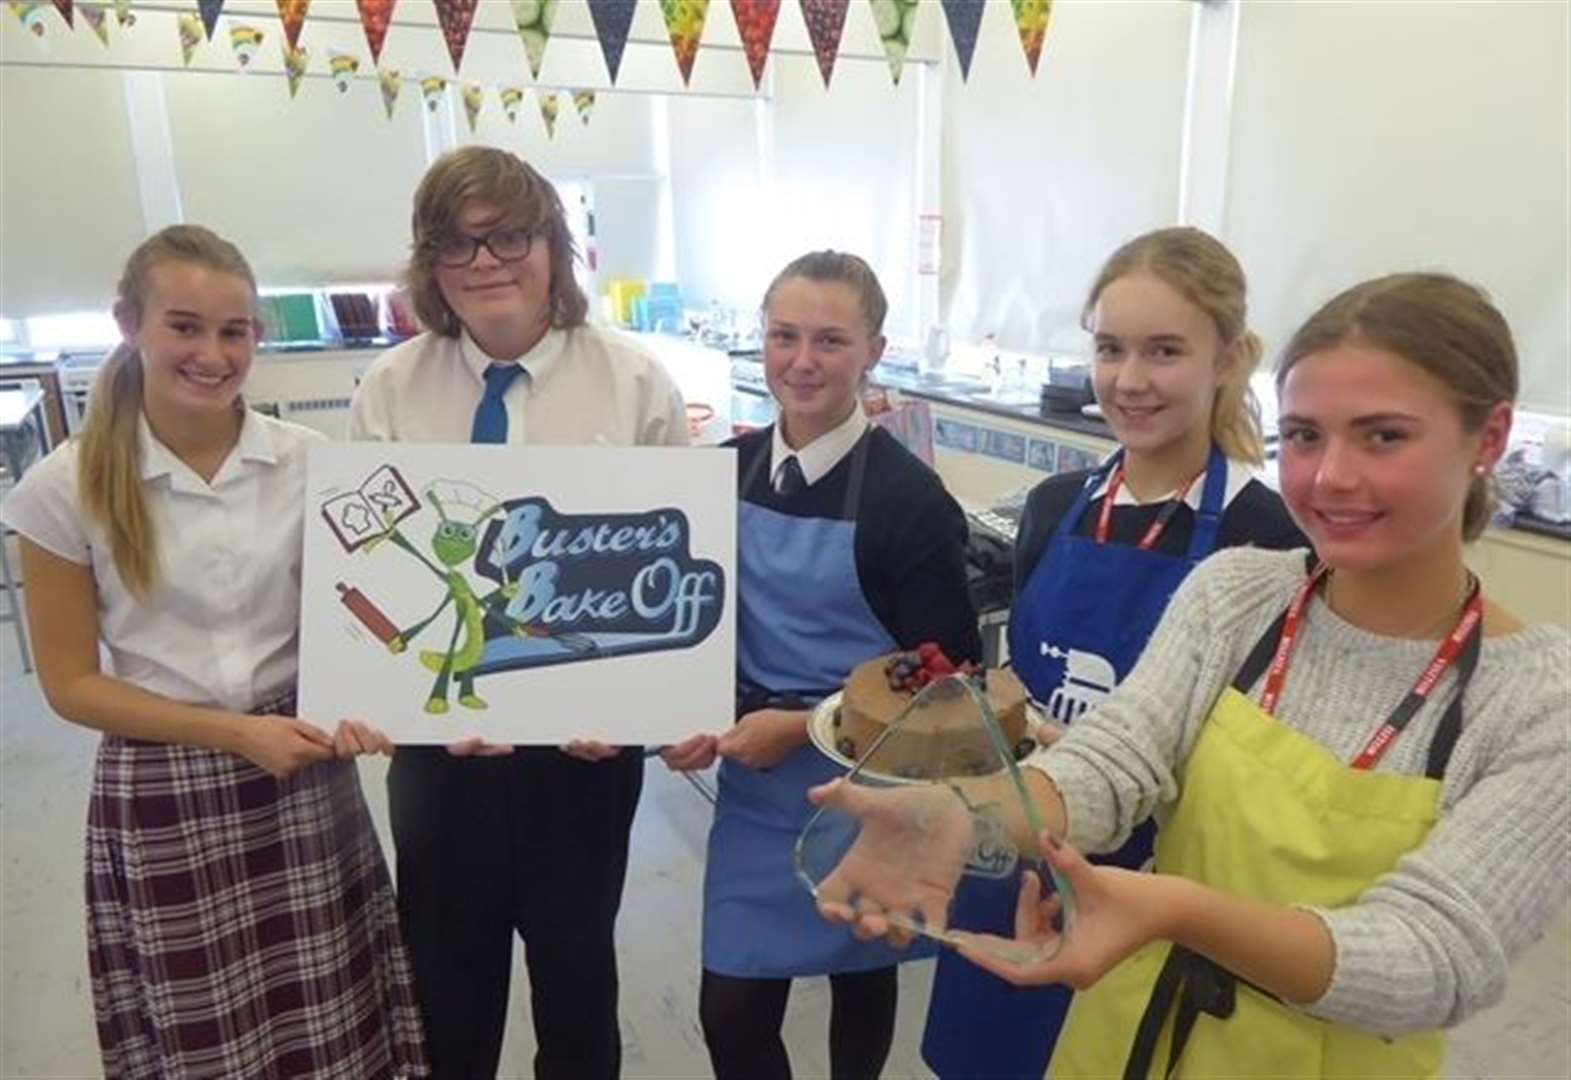 Schools invited to hold Bake Off heats